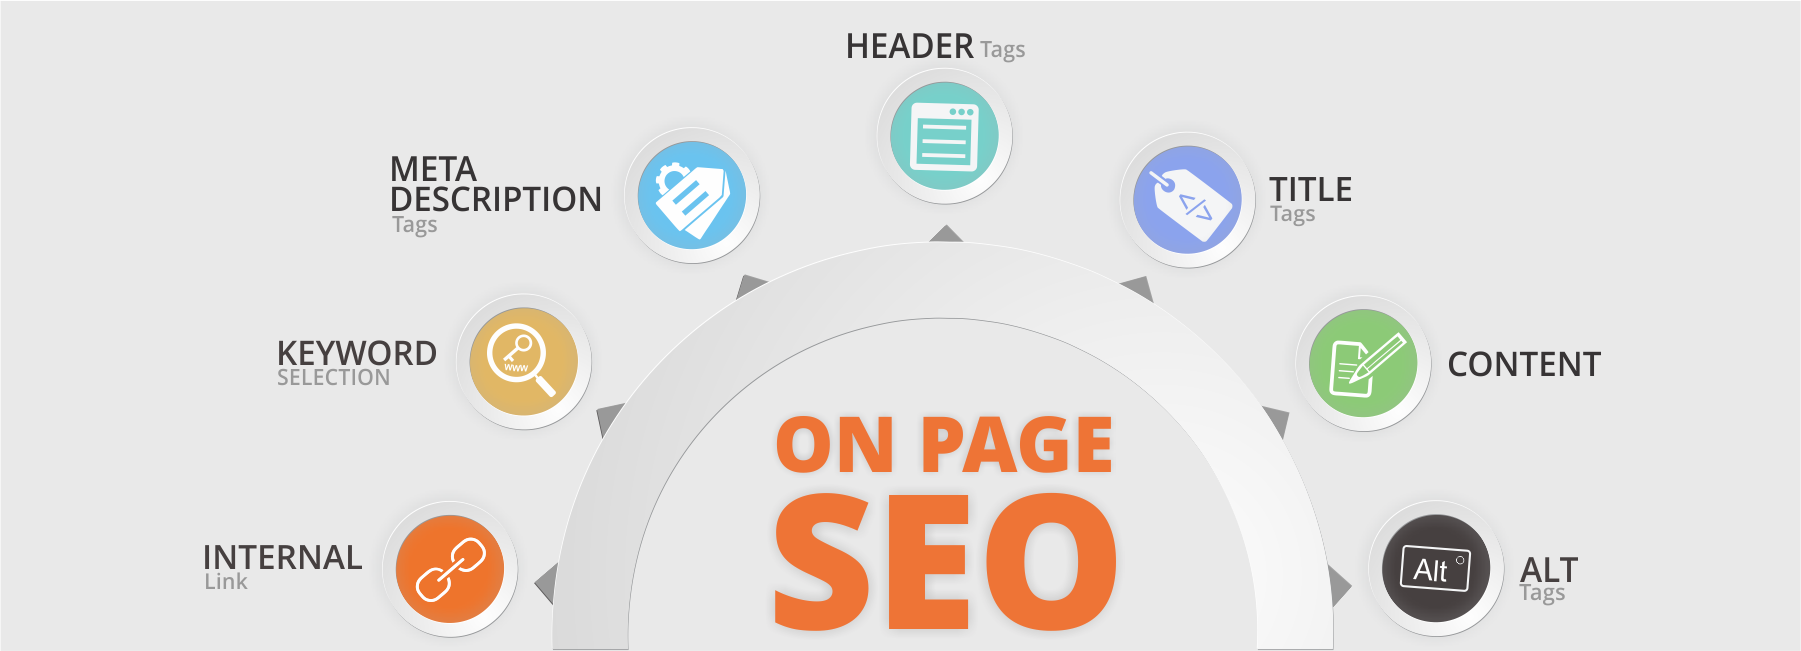 seo-on-page-